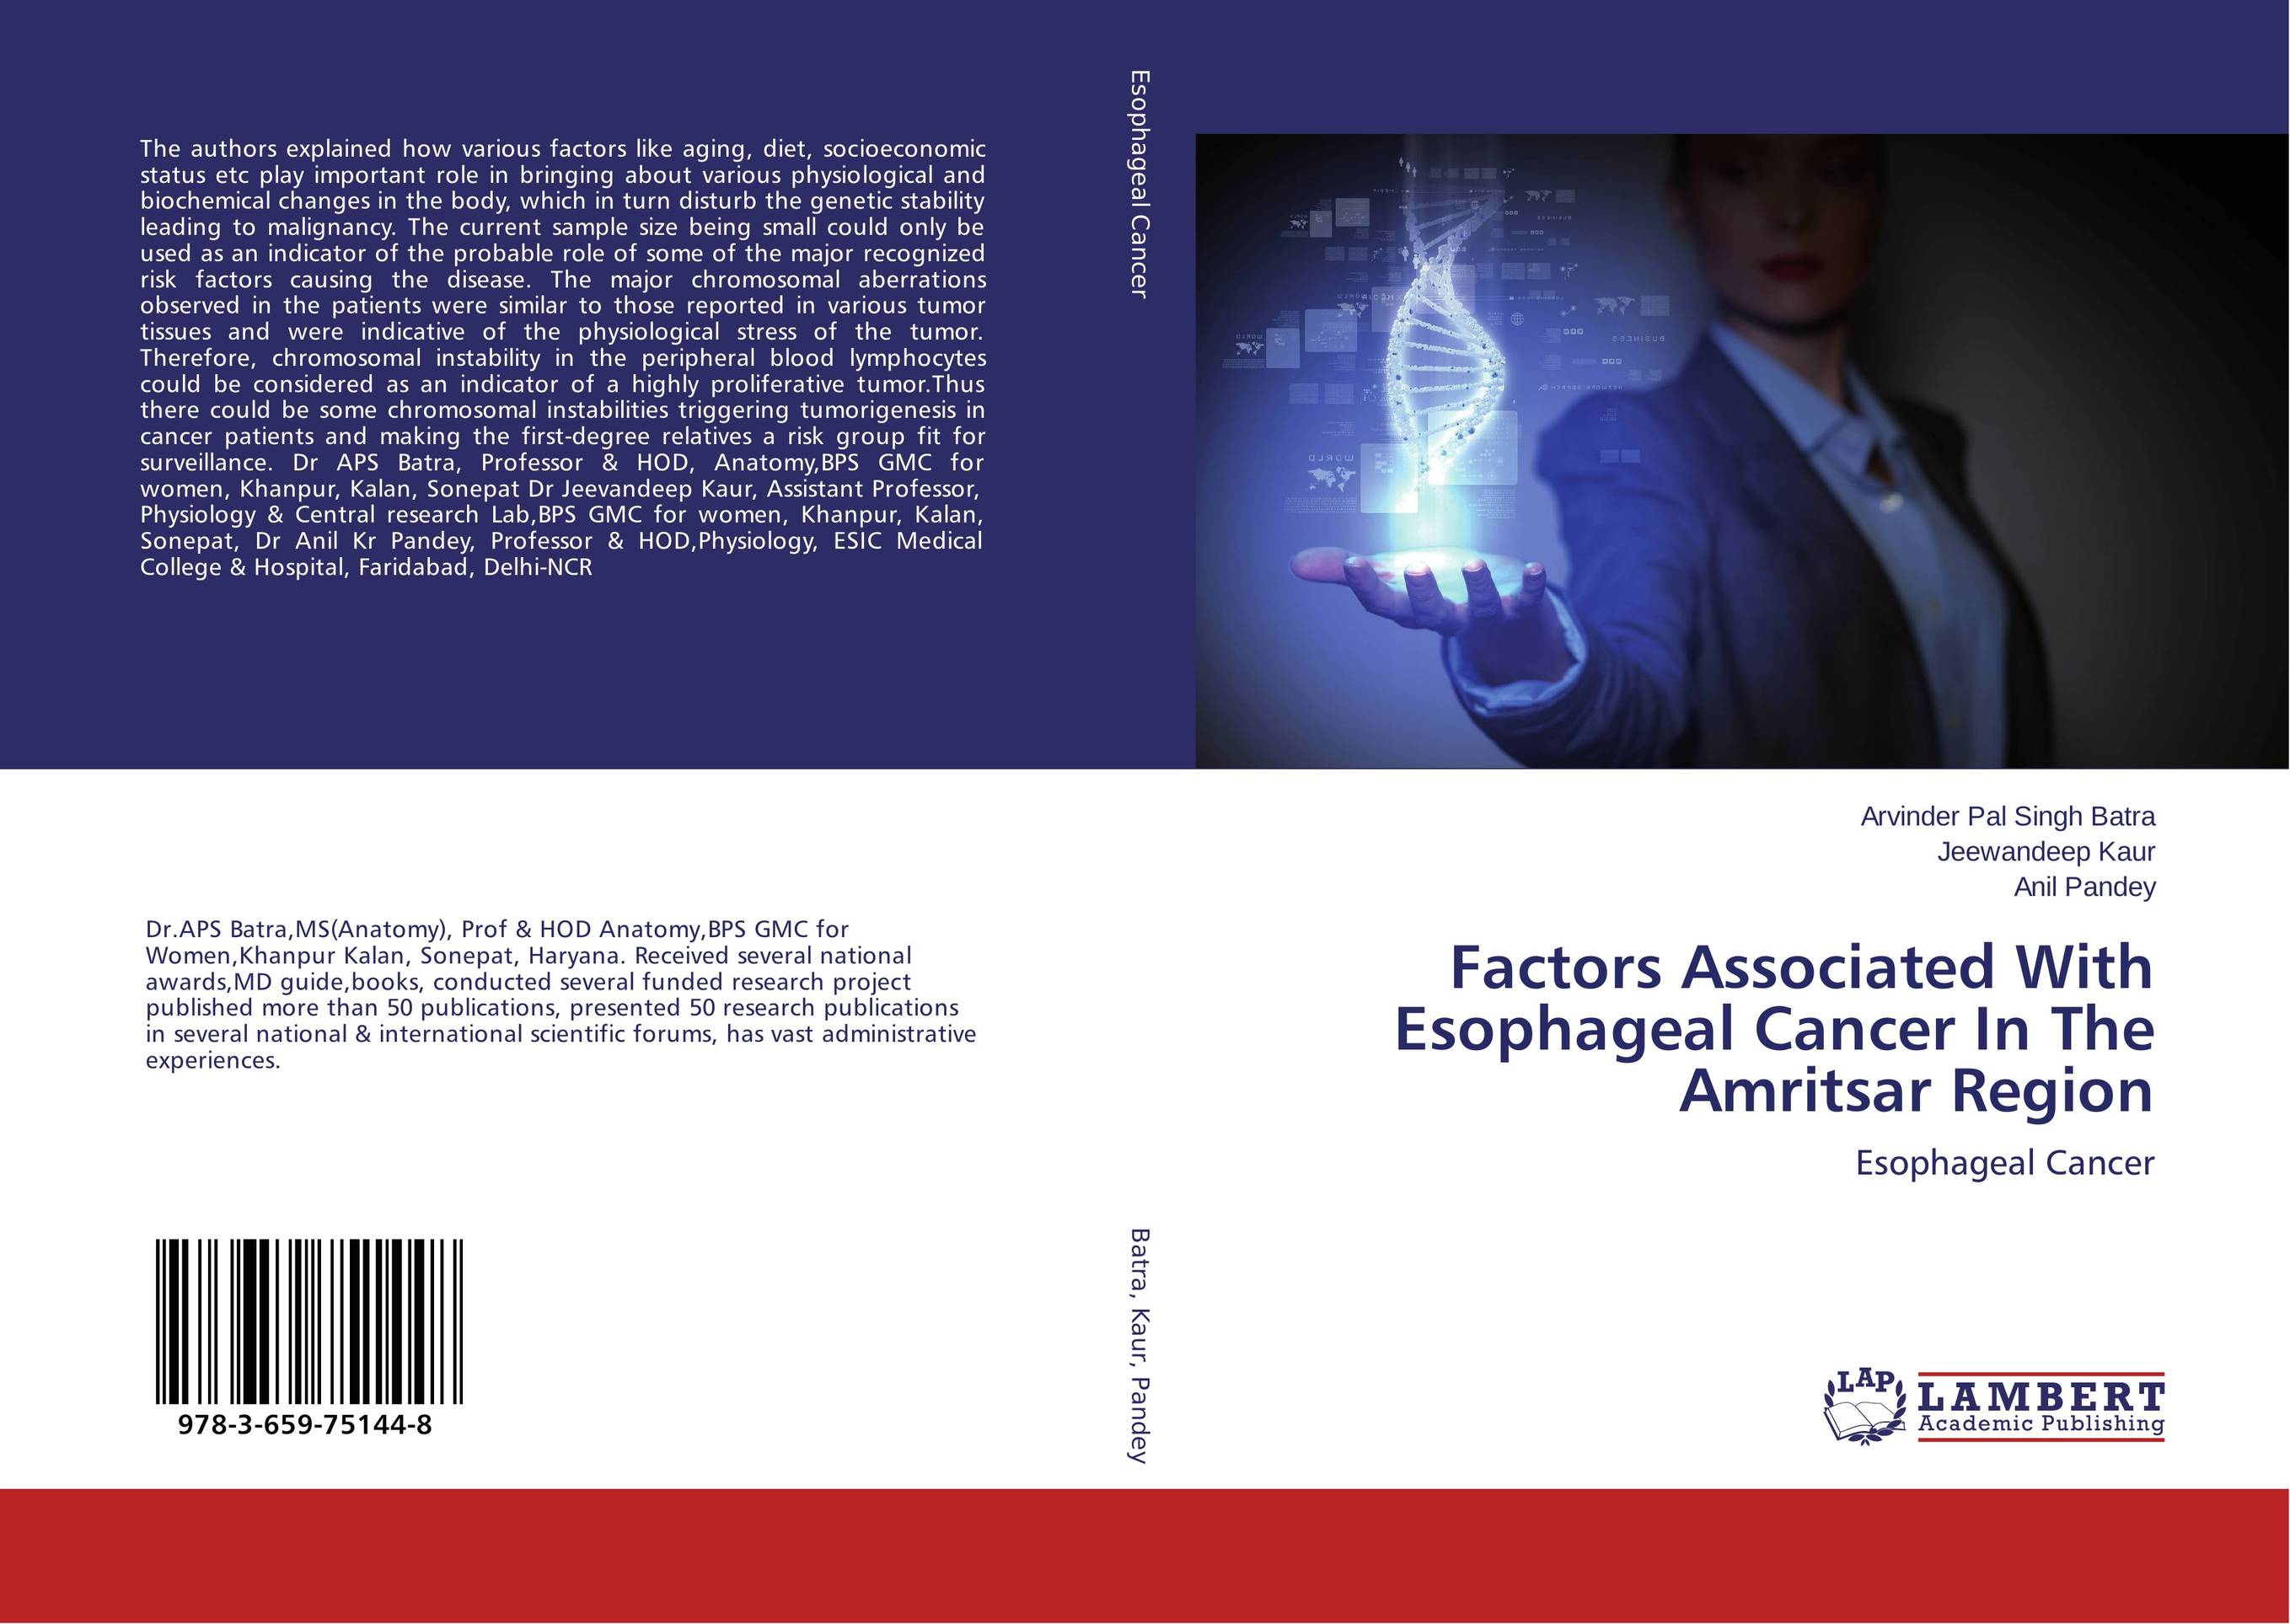 Factors Associated With Esophageal Cancer In The Amritsar Region dr ripudaman singh mrs arihant kaur bhalla and er indpreet kaur stress among bank employees